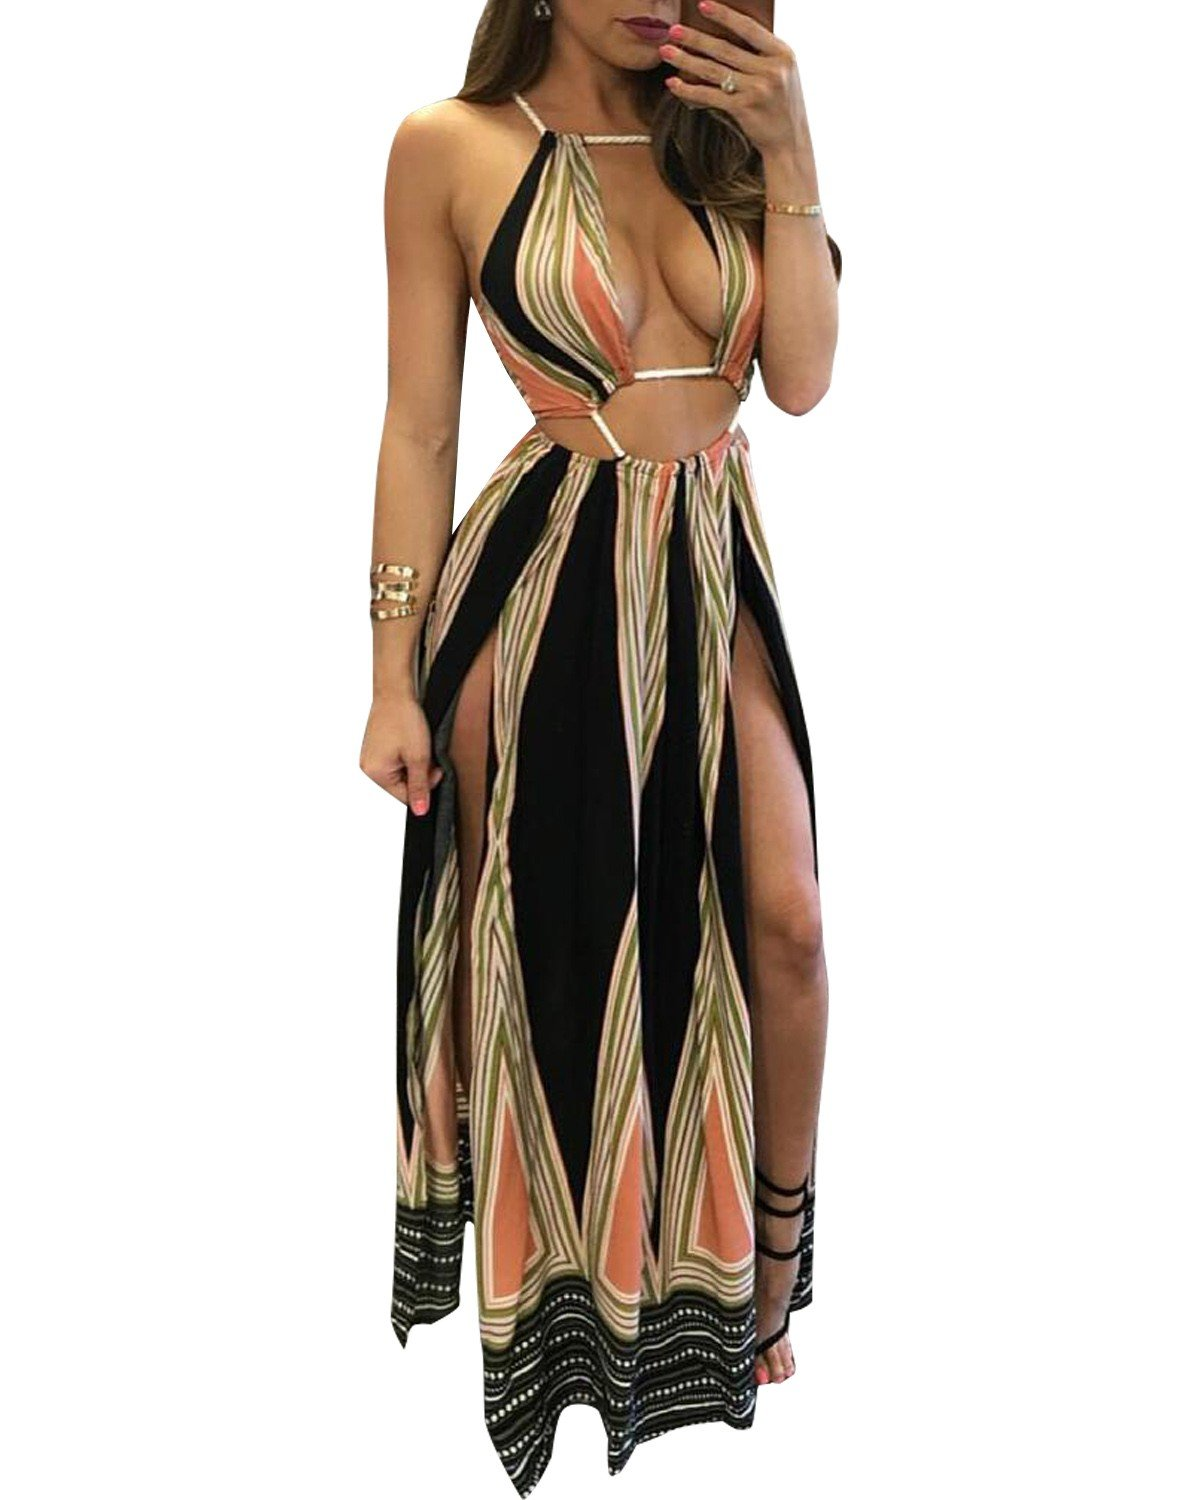 BIUBIU Women\'s Boho Rayon Halter Summer Beach Party Cover Up Dress Black L